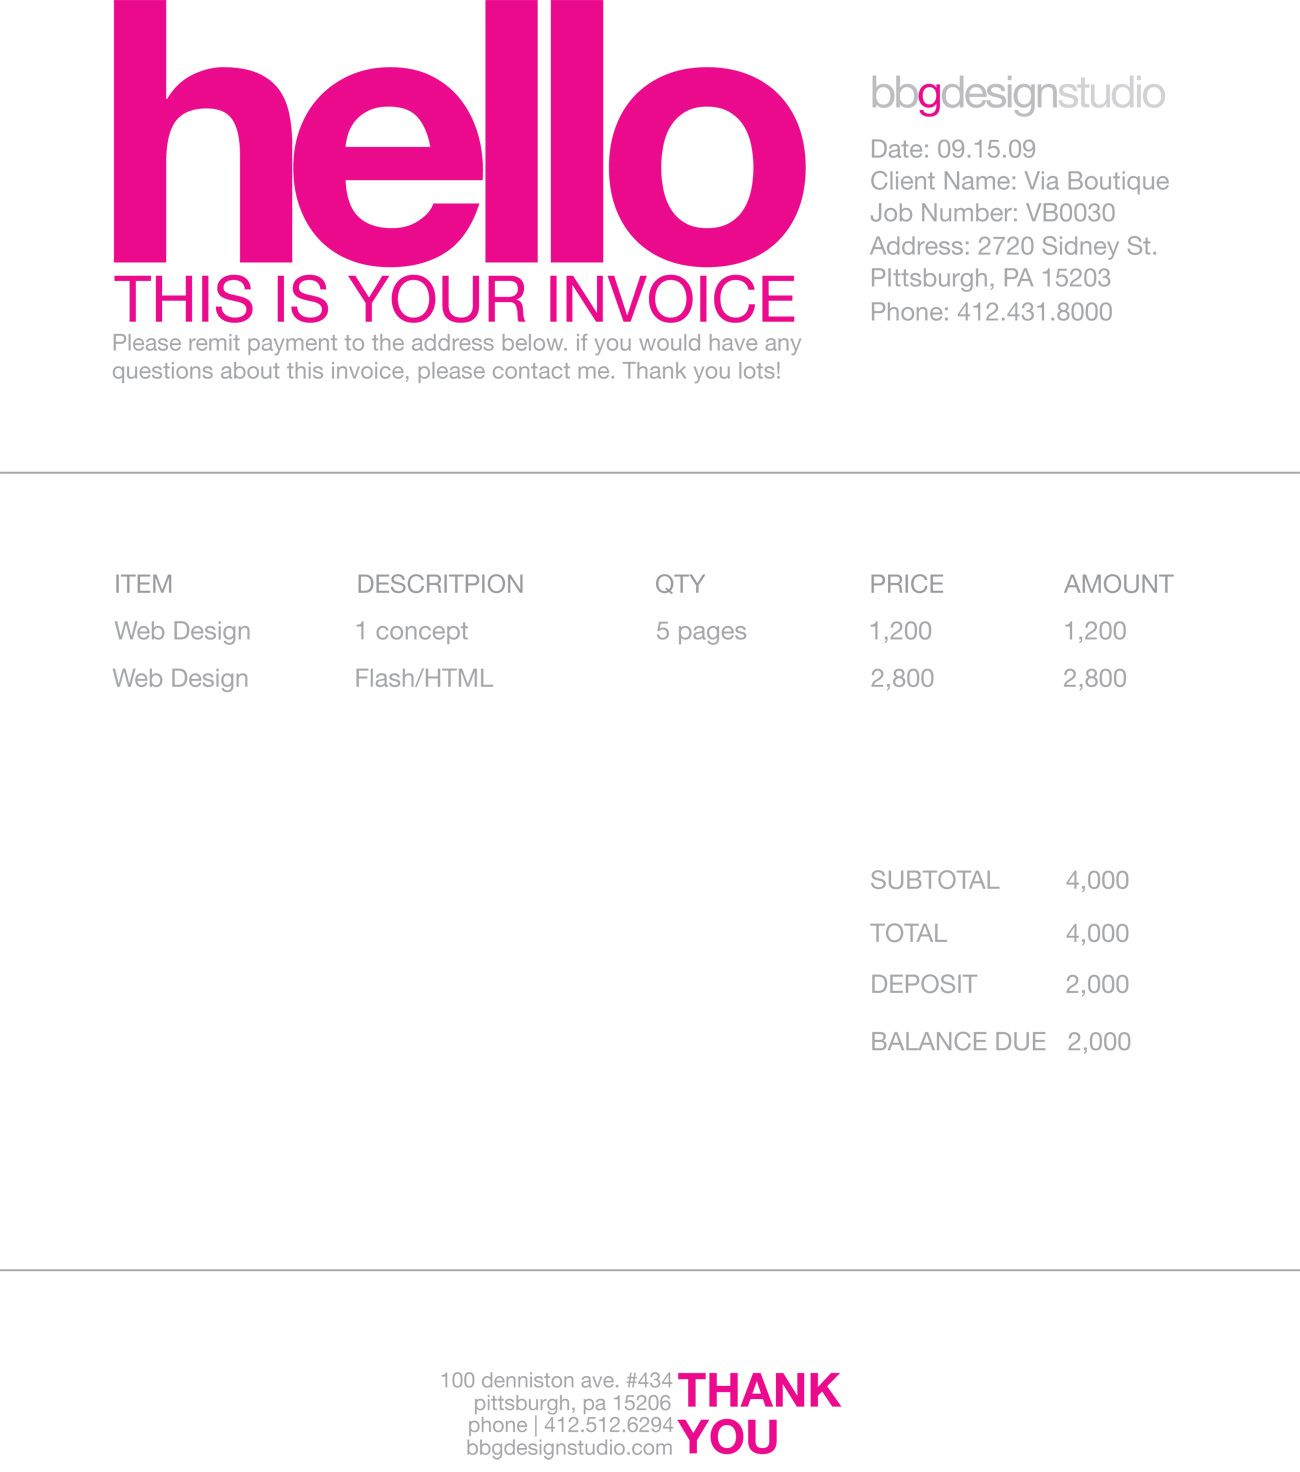 Aaaaeroincus  Outstanding  Images About Invoice Design On Pinterest With Fetching What Is The Difference Between Msrp And Invoice Price Besides Free Invoice Template For Excel Furthermore Download Excel Invoice Template With Extraordinary Auto Dealer Invoice Also Invoice Reciept In Addition Fedex International Commercial Invoice Form And Invoice Tax As Well As Invoice In Accounting Additionally Invoice Print From Pinterestcom With Aaaaeroincus  Fetching  Images About Invoice Design On Pinterest With Extraordinary What Is The Difference Between Msrp And Invoice Price Besides Free Invoice Template For Excel Furthermore Download Excel Invoice Template And Outstanding Auto Dealer Invoice Also Invoice Reciept In Addition Fedex International Commercial Invoice Form From Pinterestcom